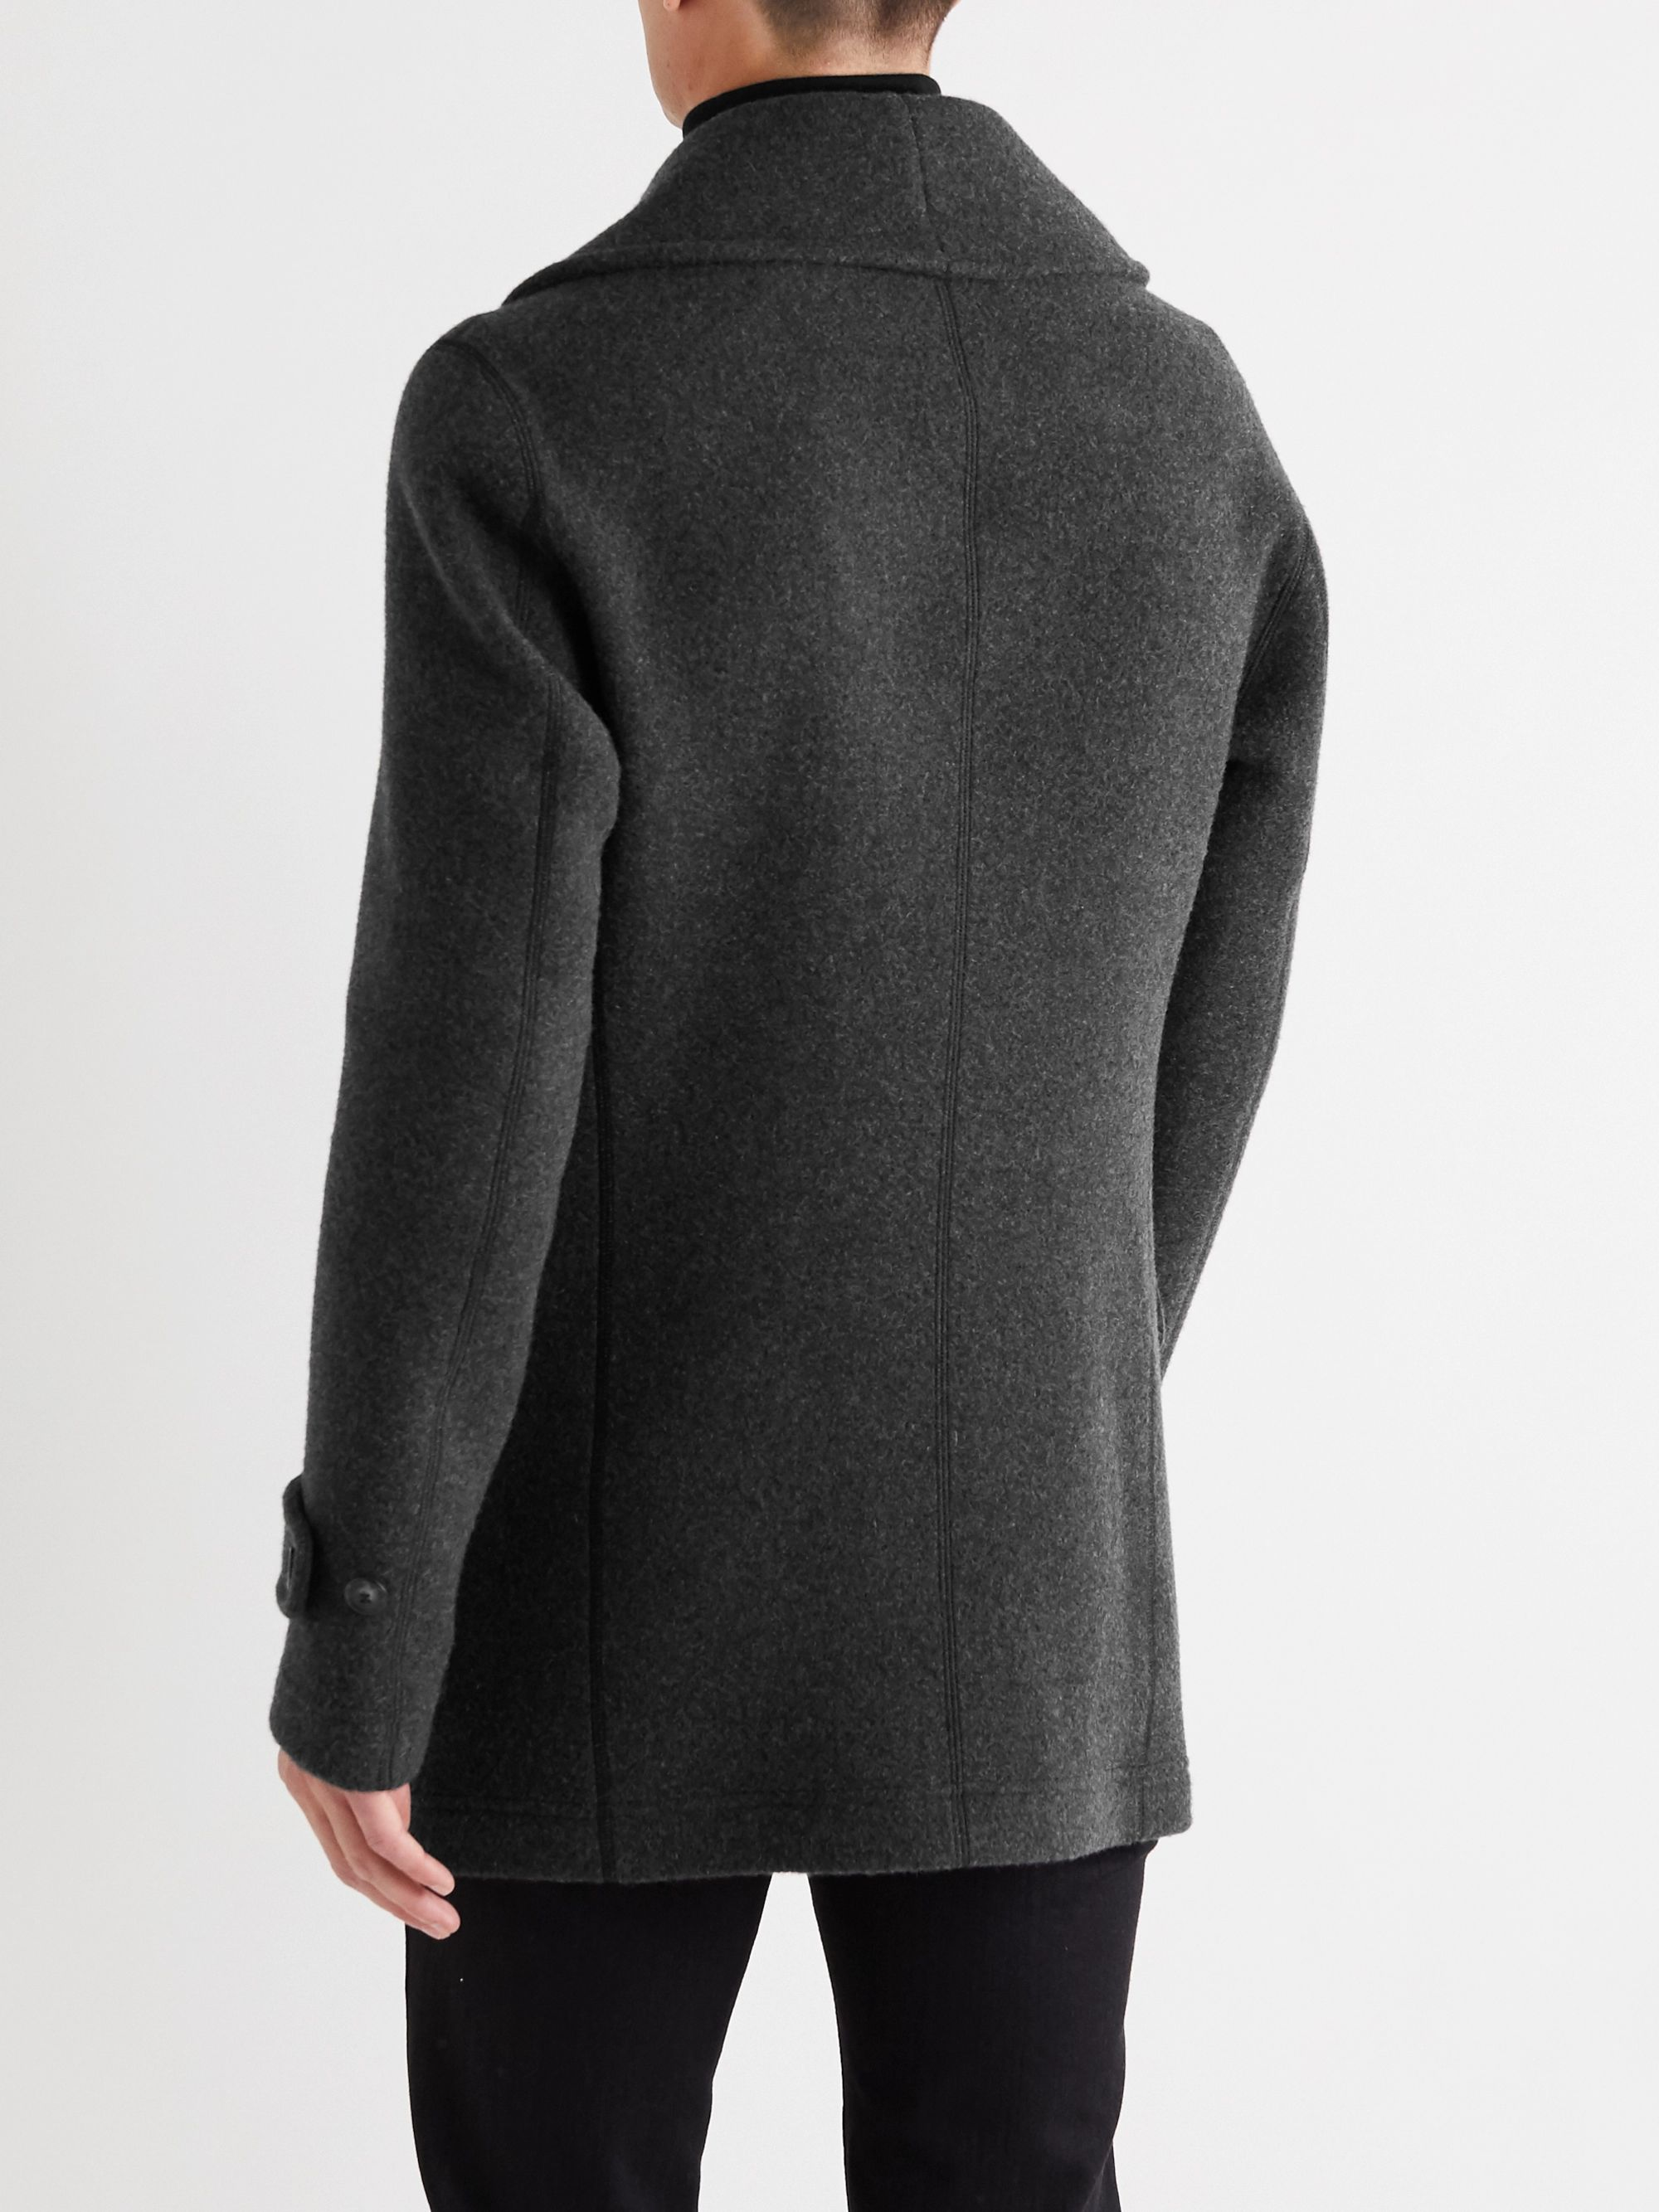 Giorgio Armani Double-Faced Cashmere Peacoat